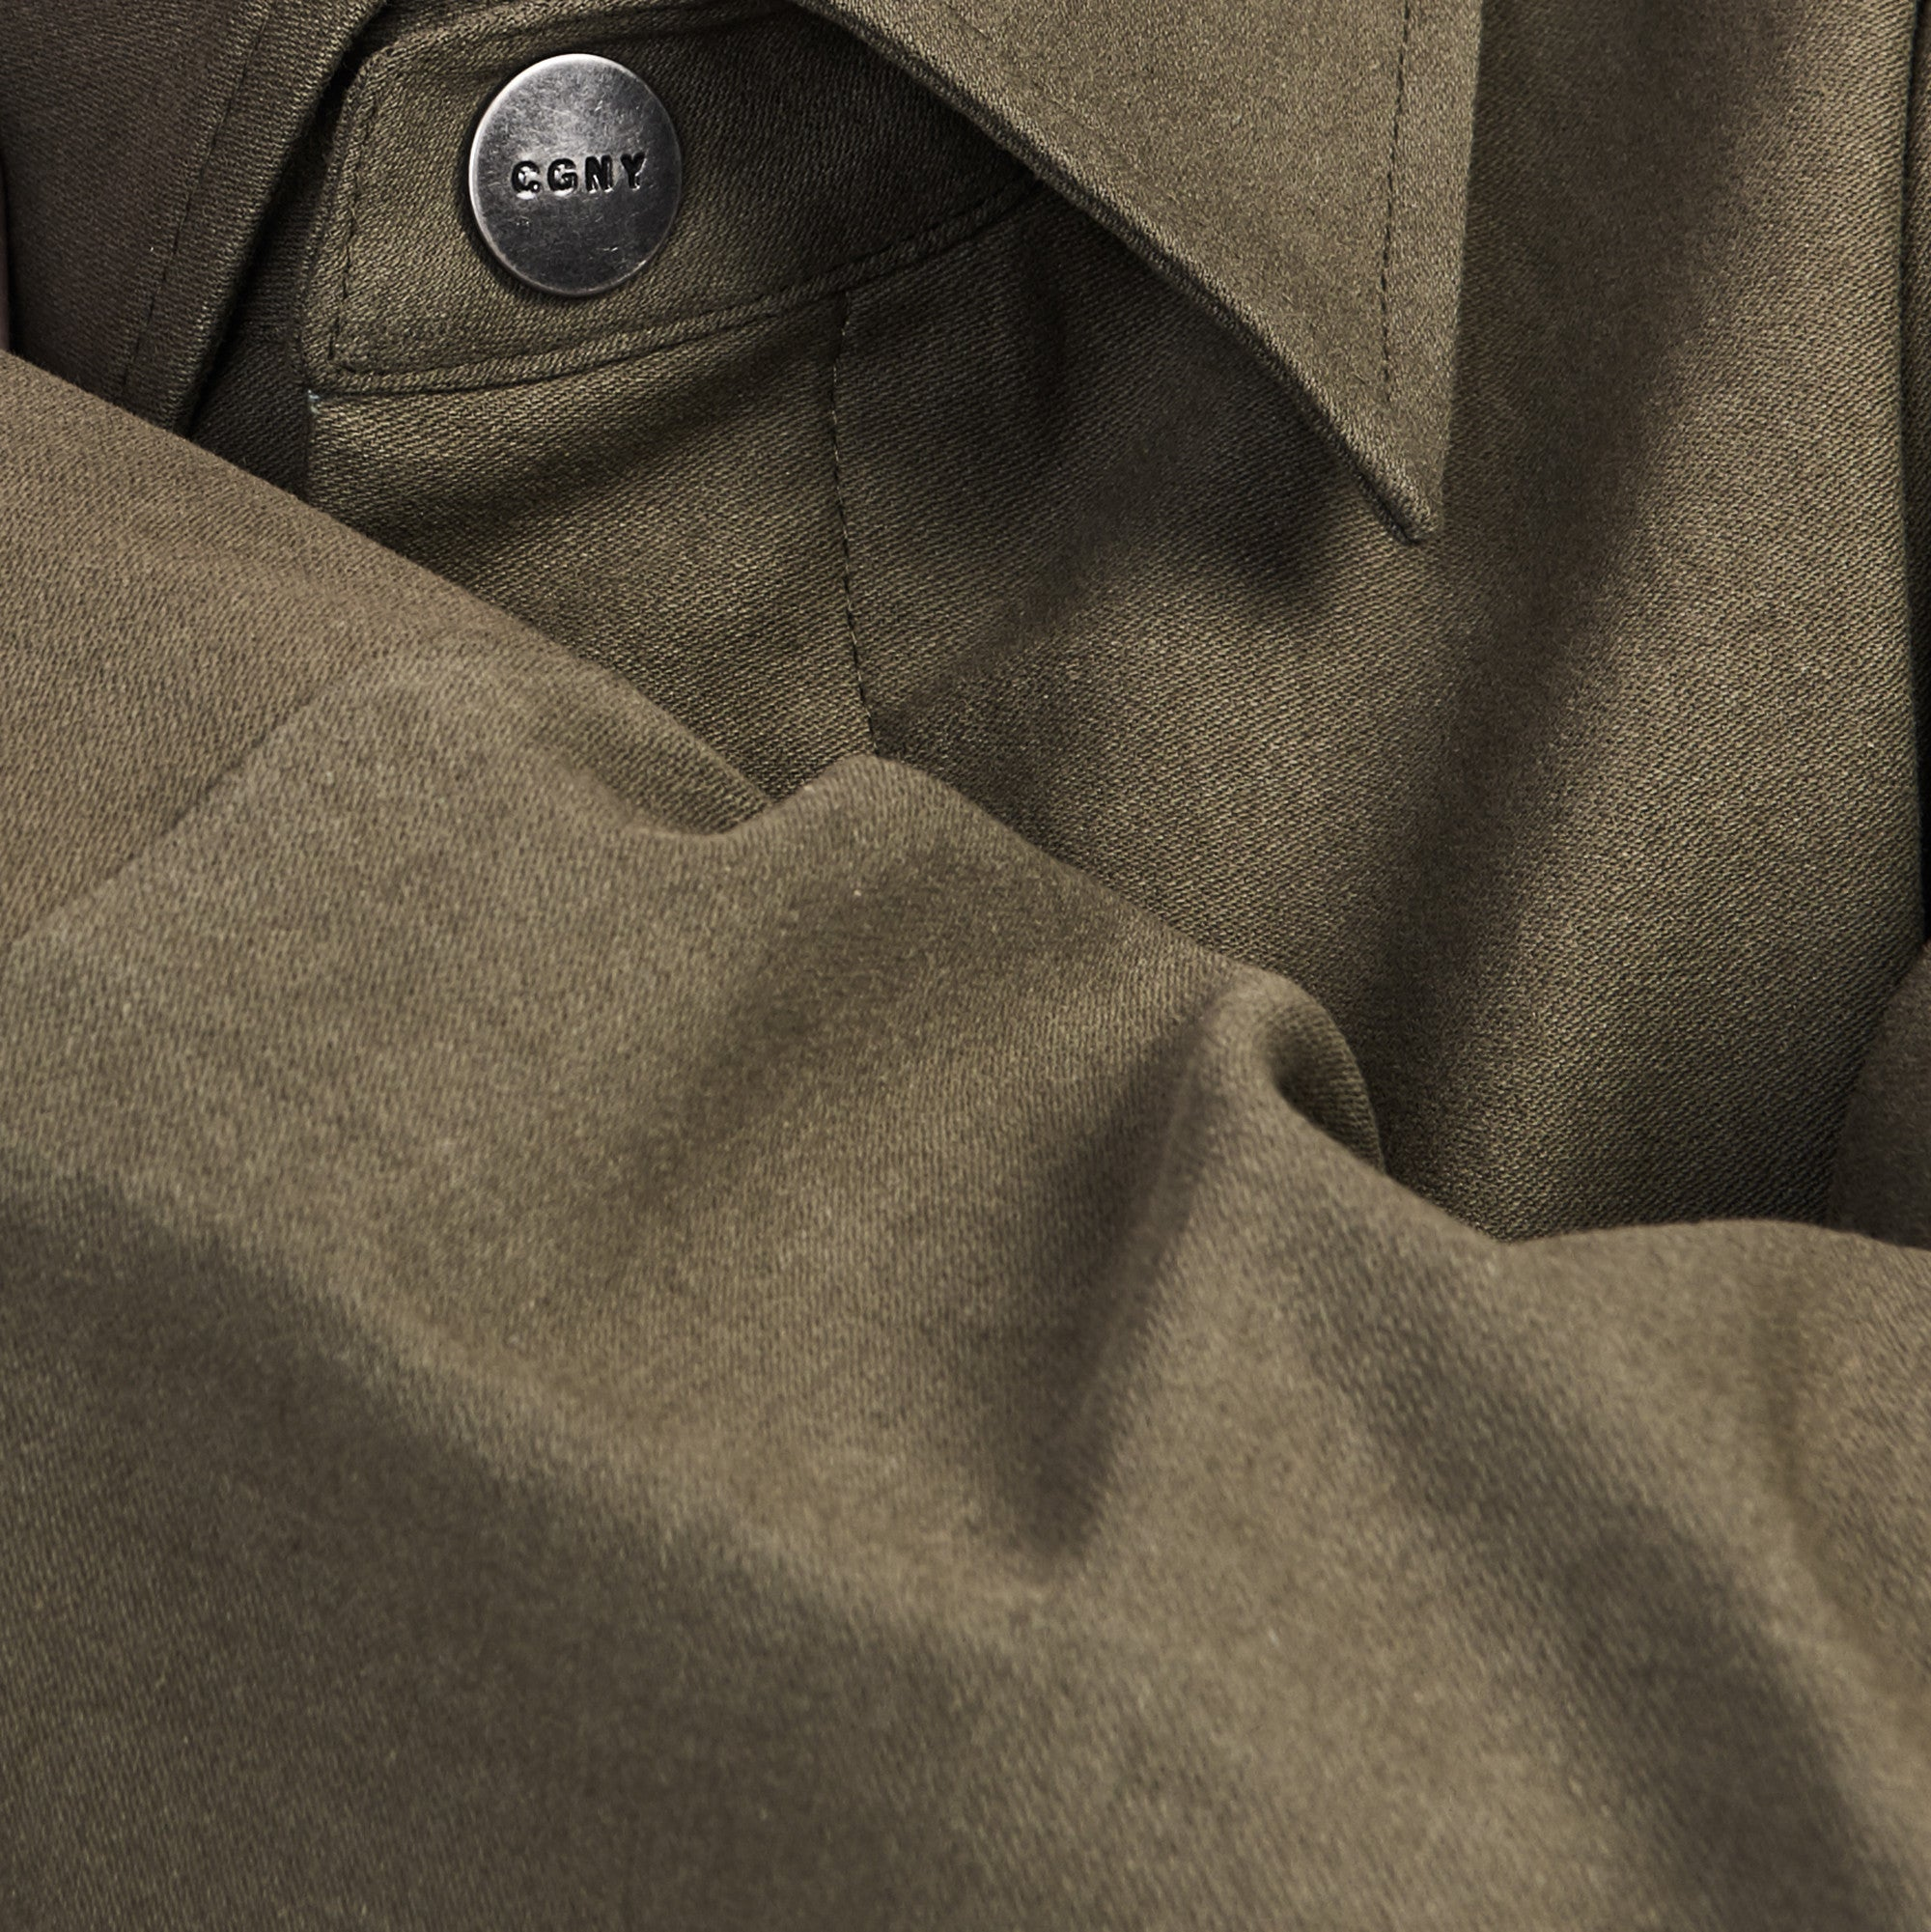 Longline Twill Jacket with Multi-Pockets in Olive - CGNY